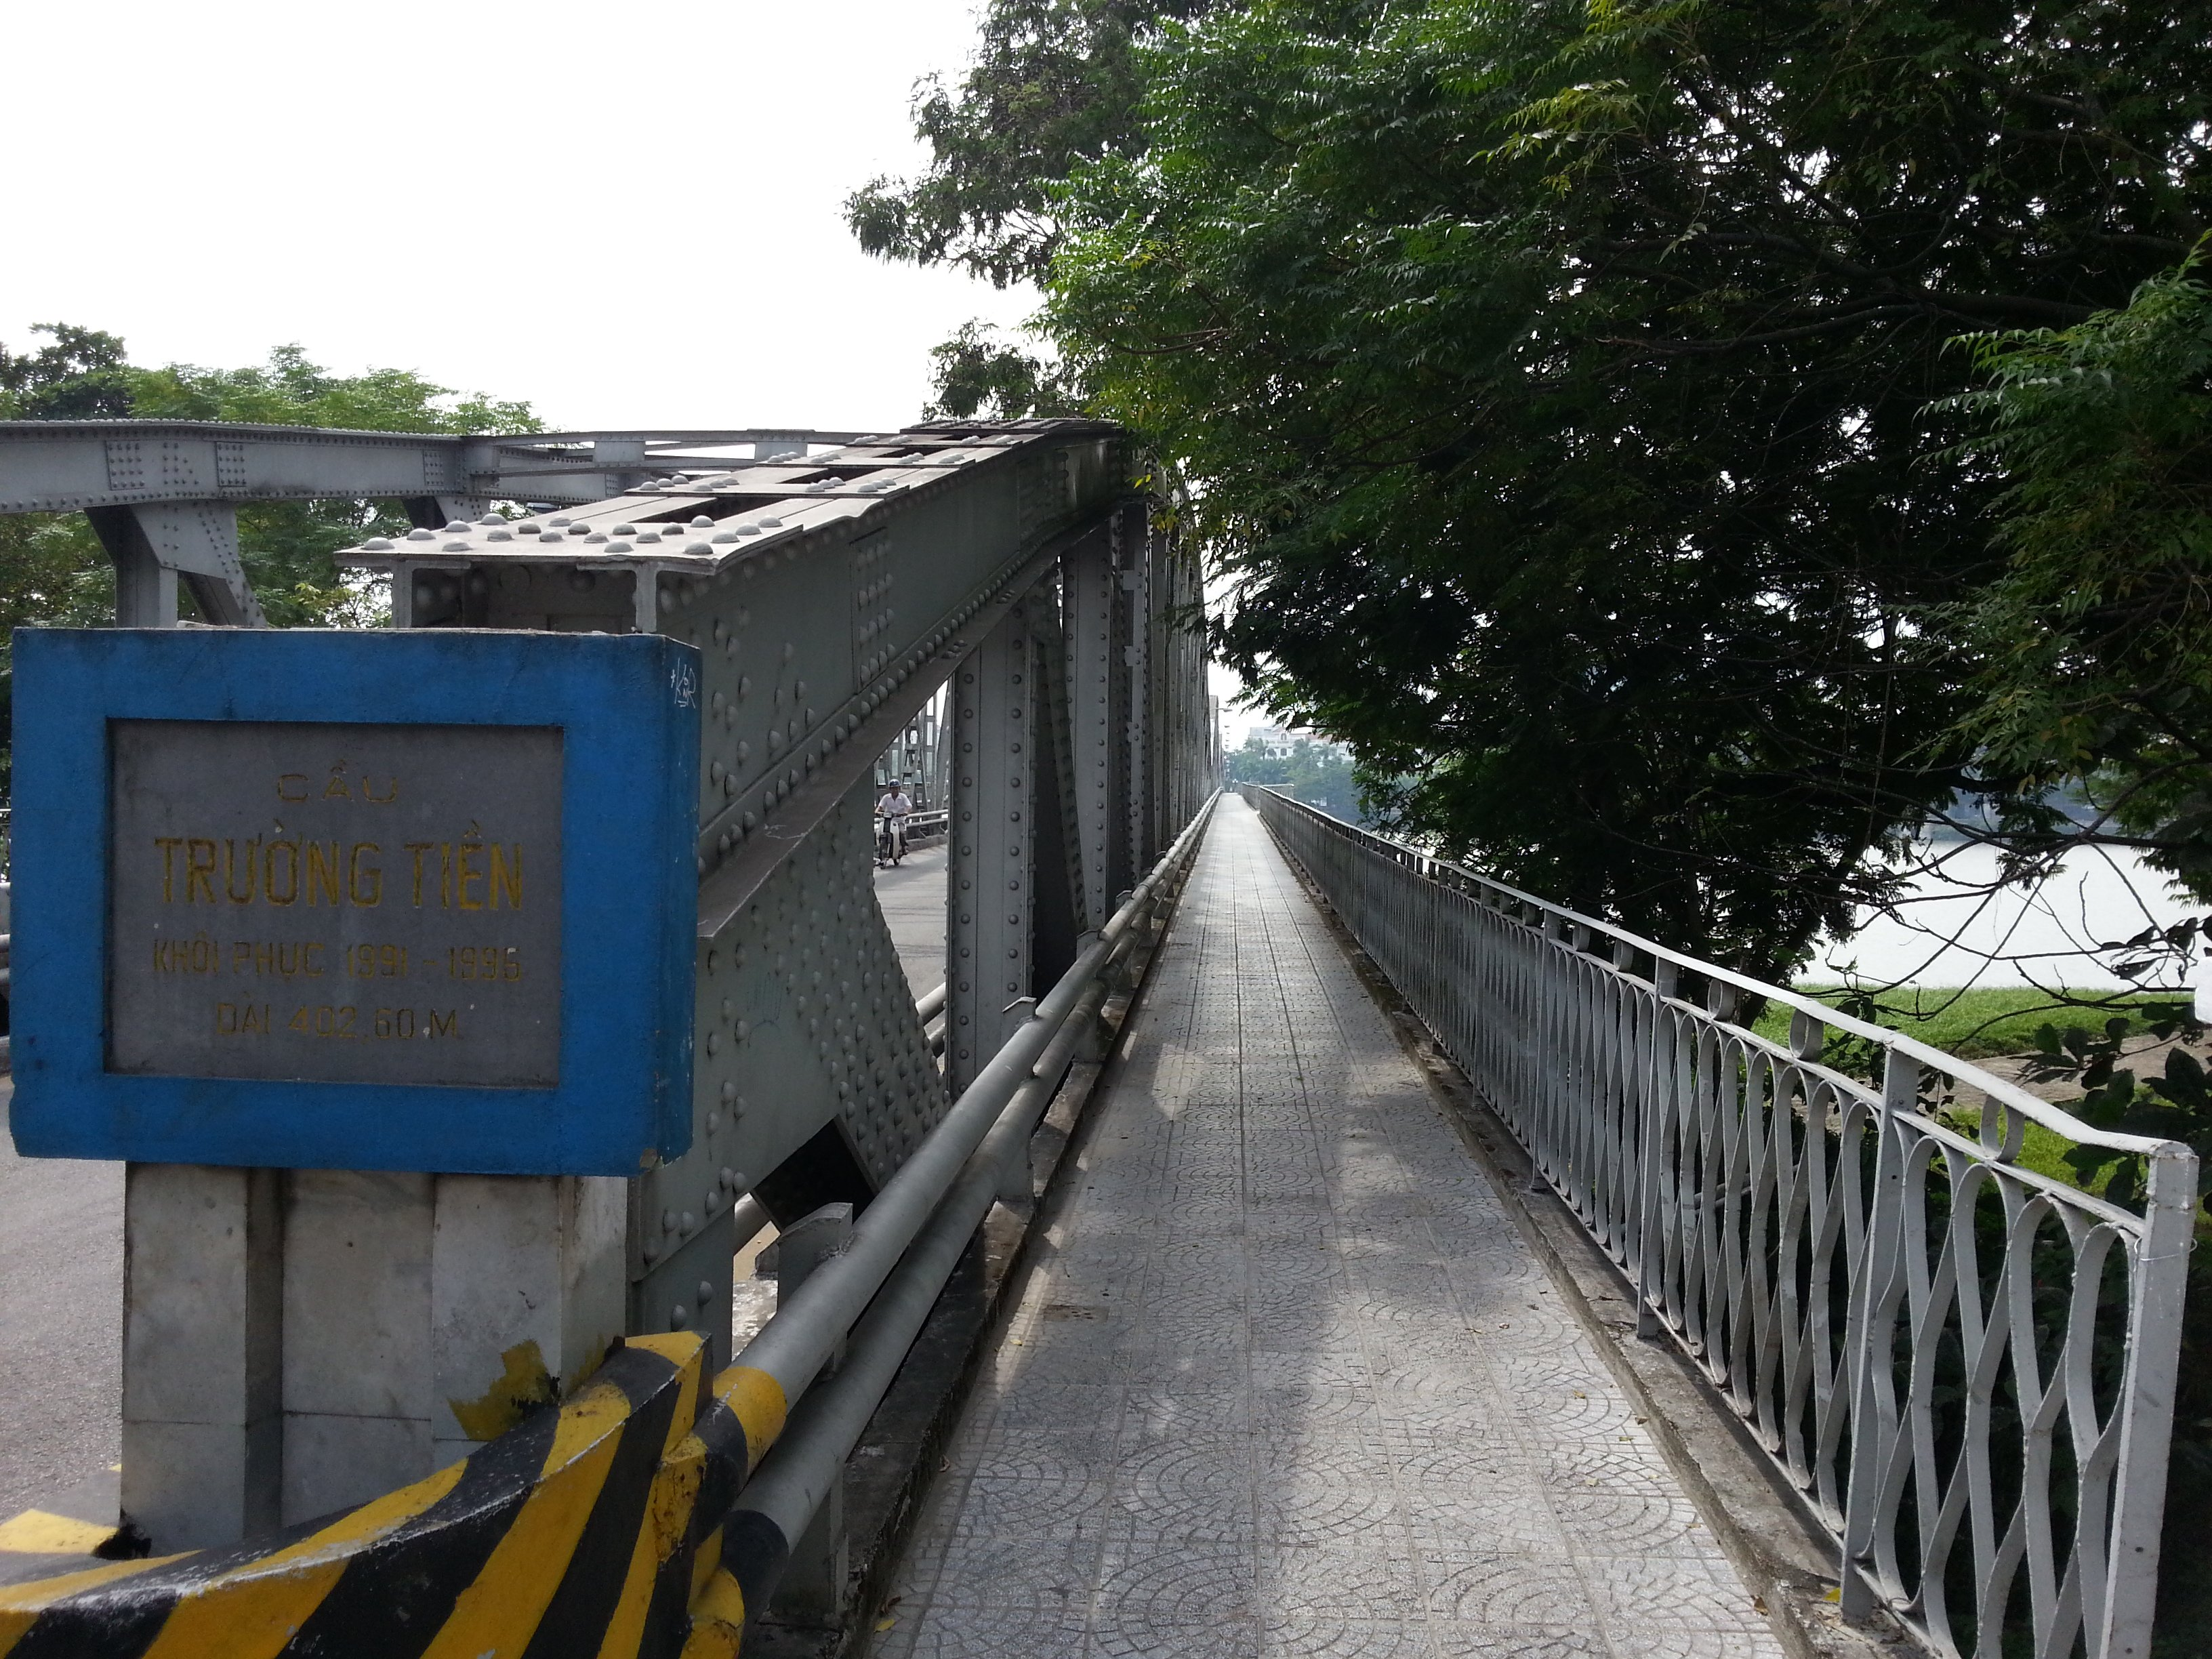 Pedestrian walkway on Truong Tien Bridge